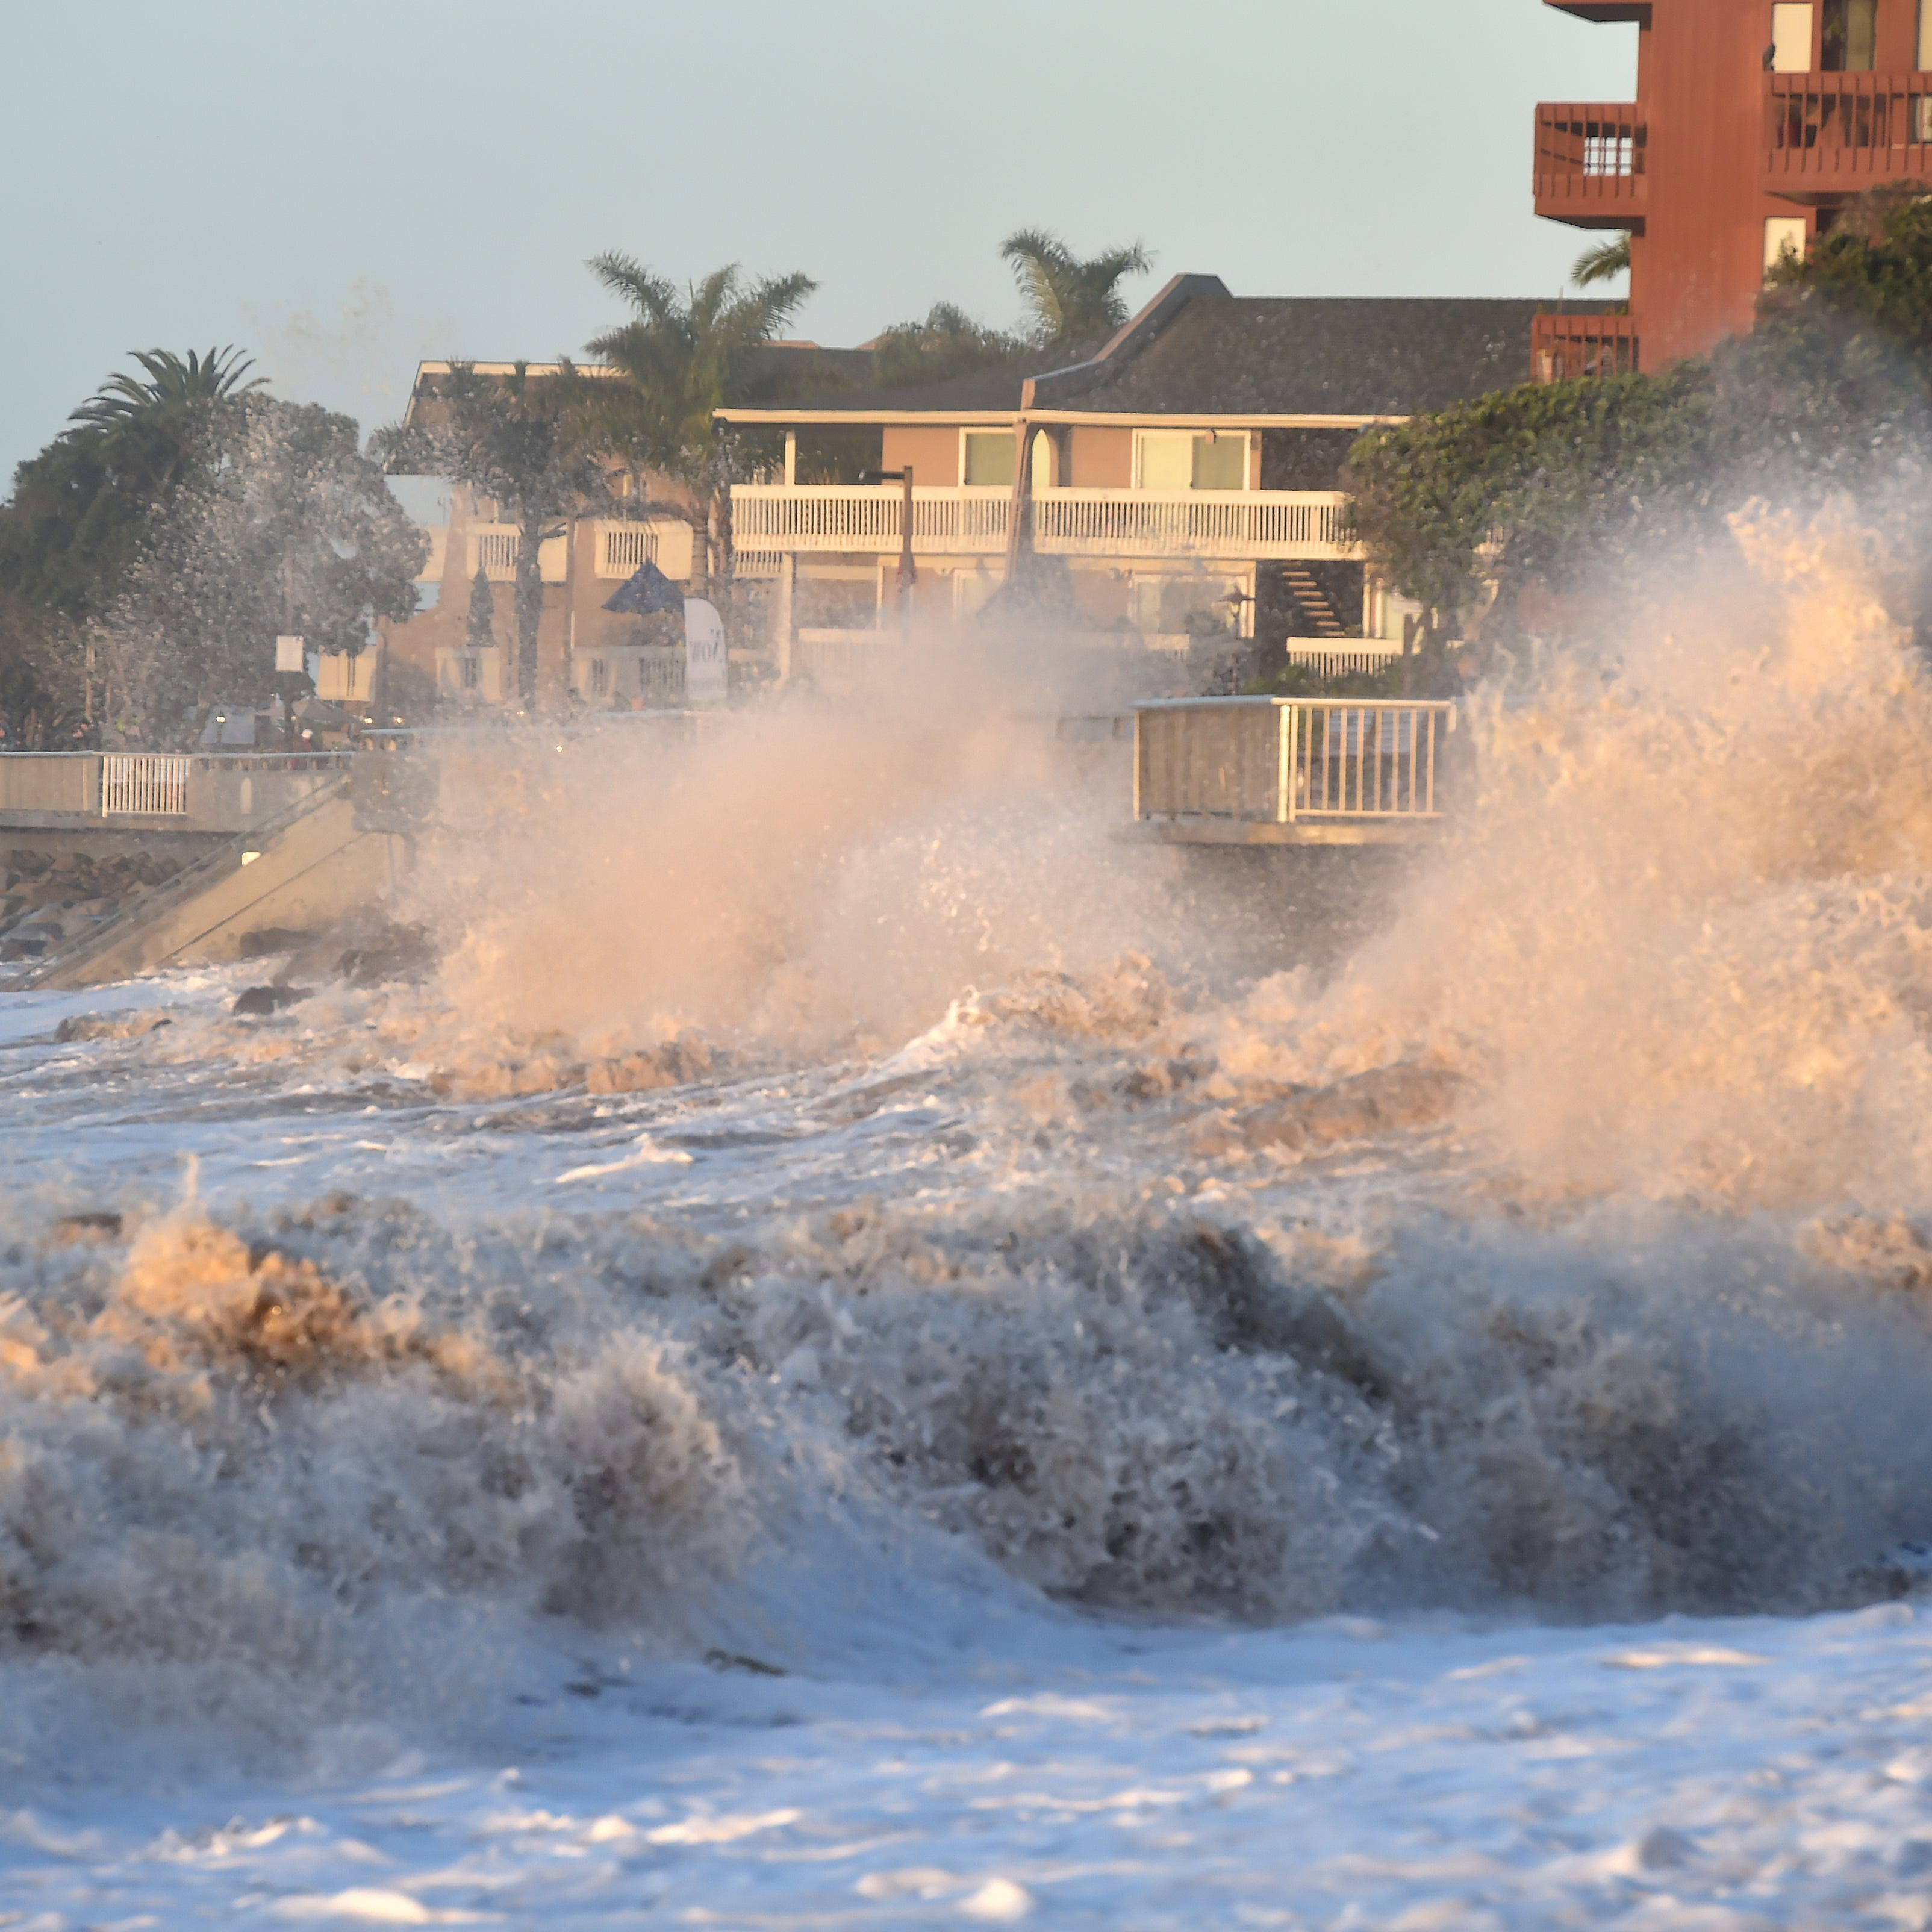 High-surf hazards spur alert by weather agency